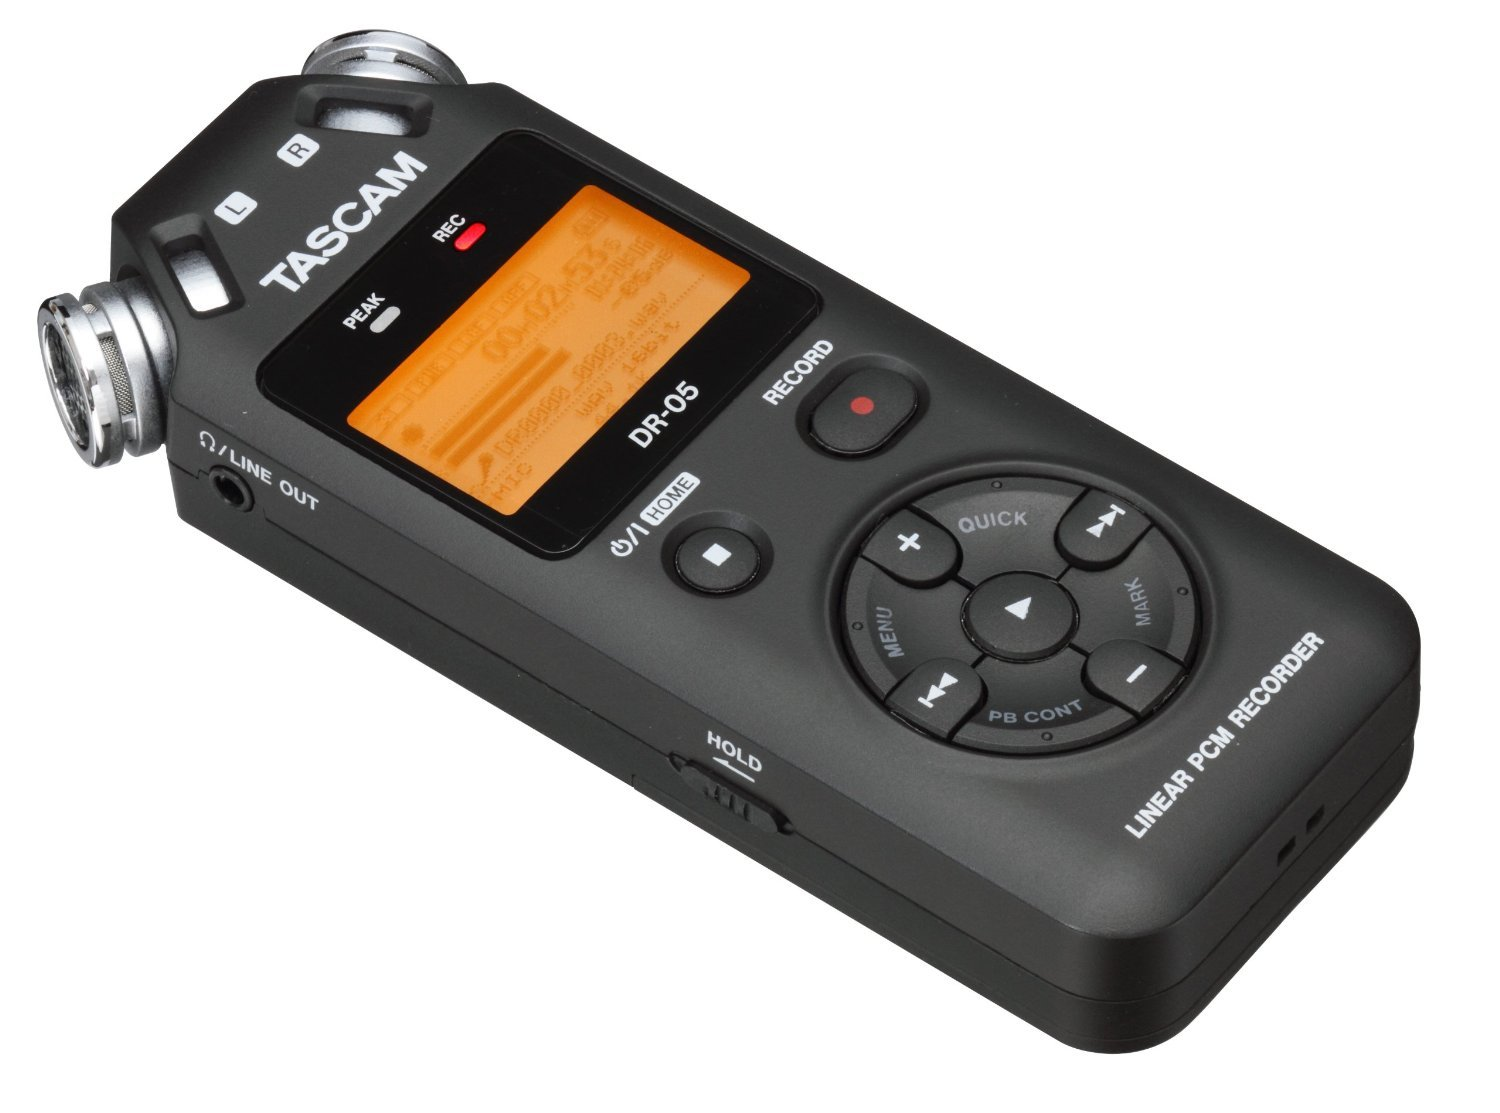 TASCAM DR-05 for music or journalism youtube videos